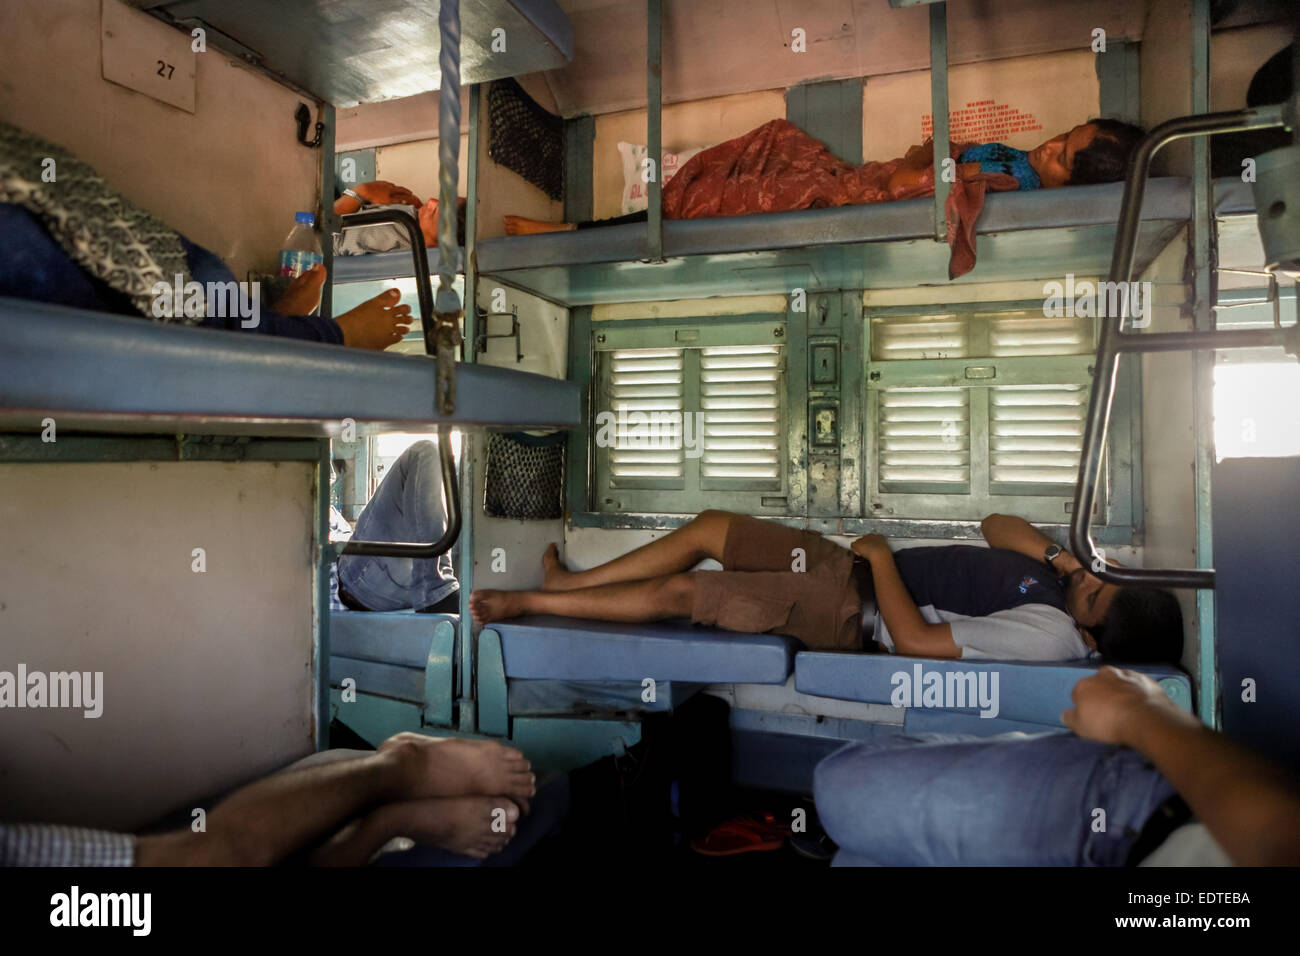 Passengers sleeping in sleeper class of the India railway service. - Stock Image